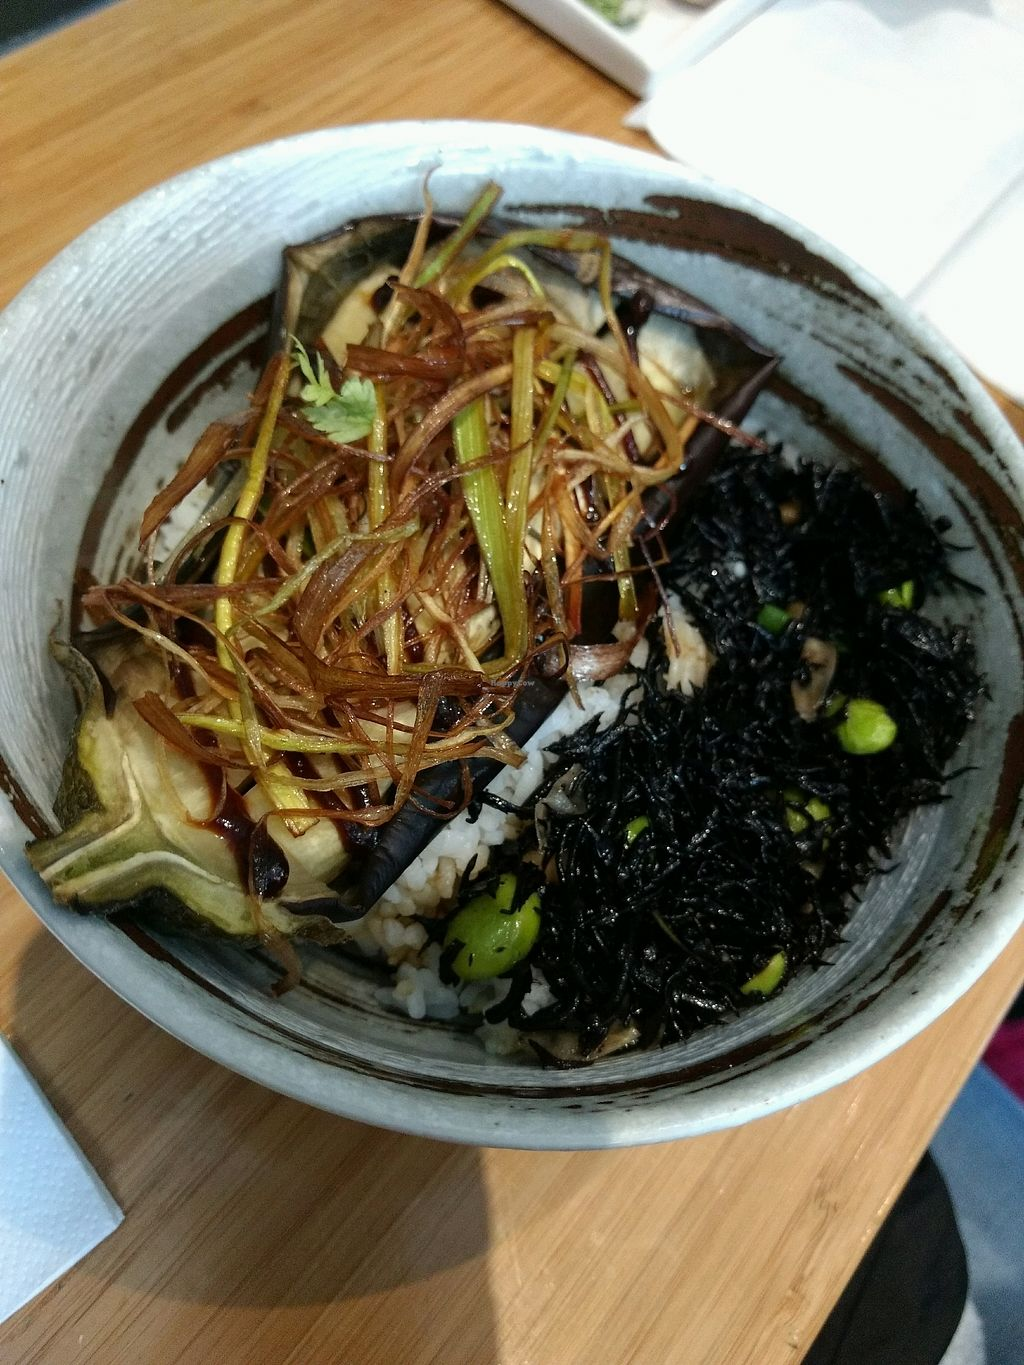 """Photo of Tombo  by <a href=""""/members/profile/craigmc"""">craigmc</a> <br/>aubergine rice bowl <br/> October 18, 2017  - <a href='/contact/abuse/image/83794/316326'>Report</a>"""